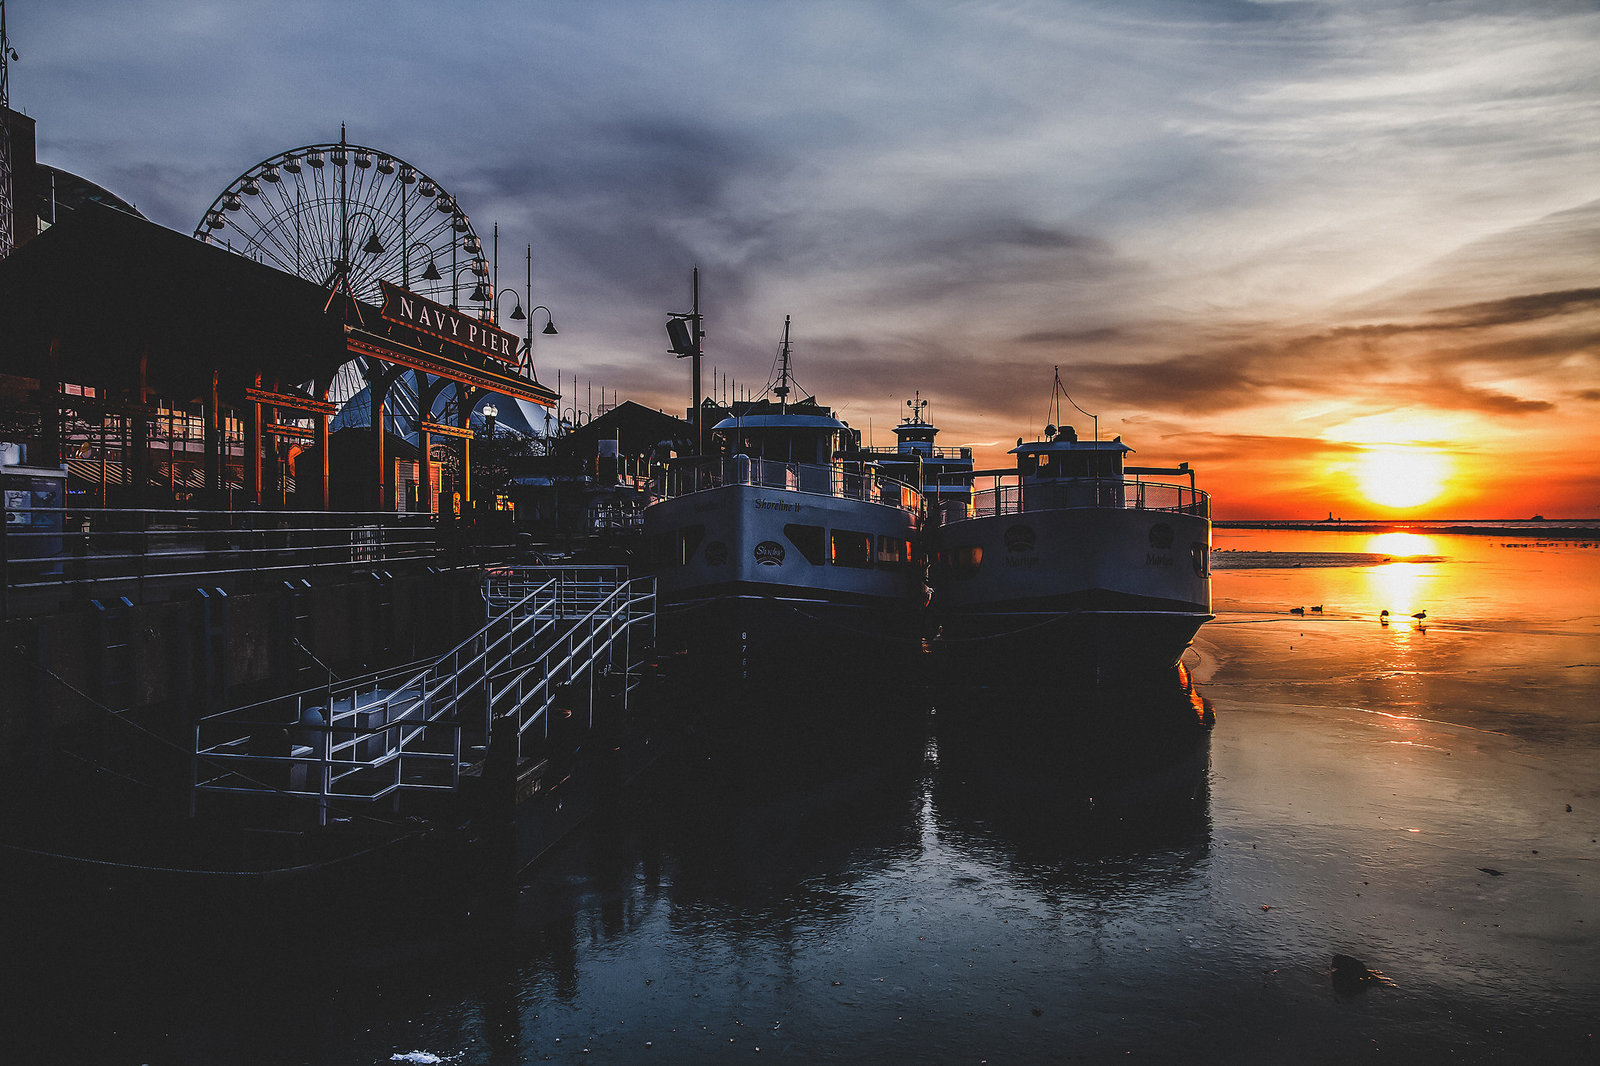 Chicago Navy Pier at sunrise